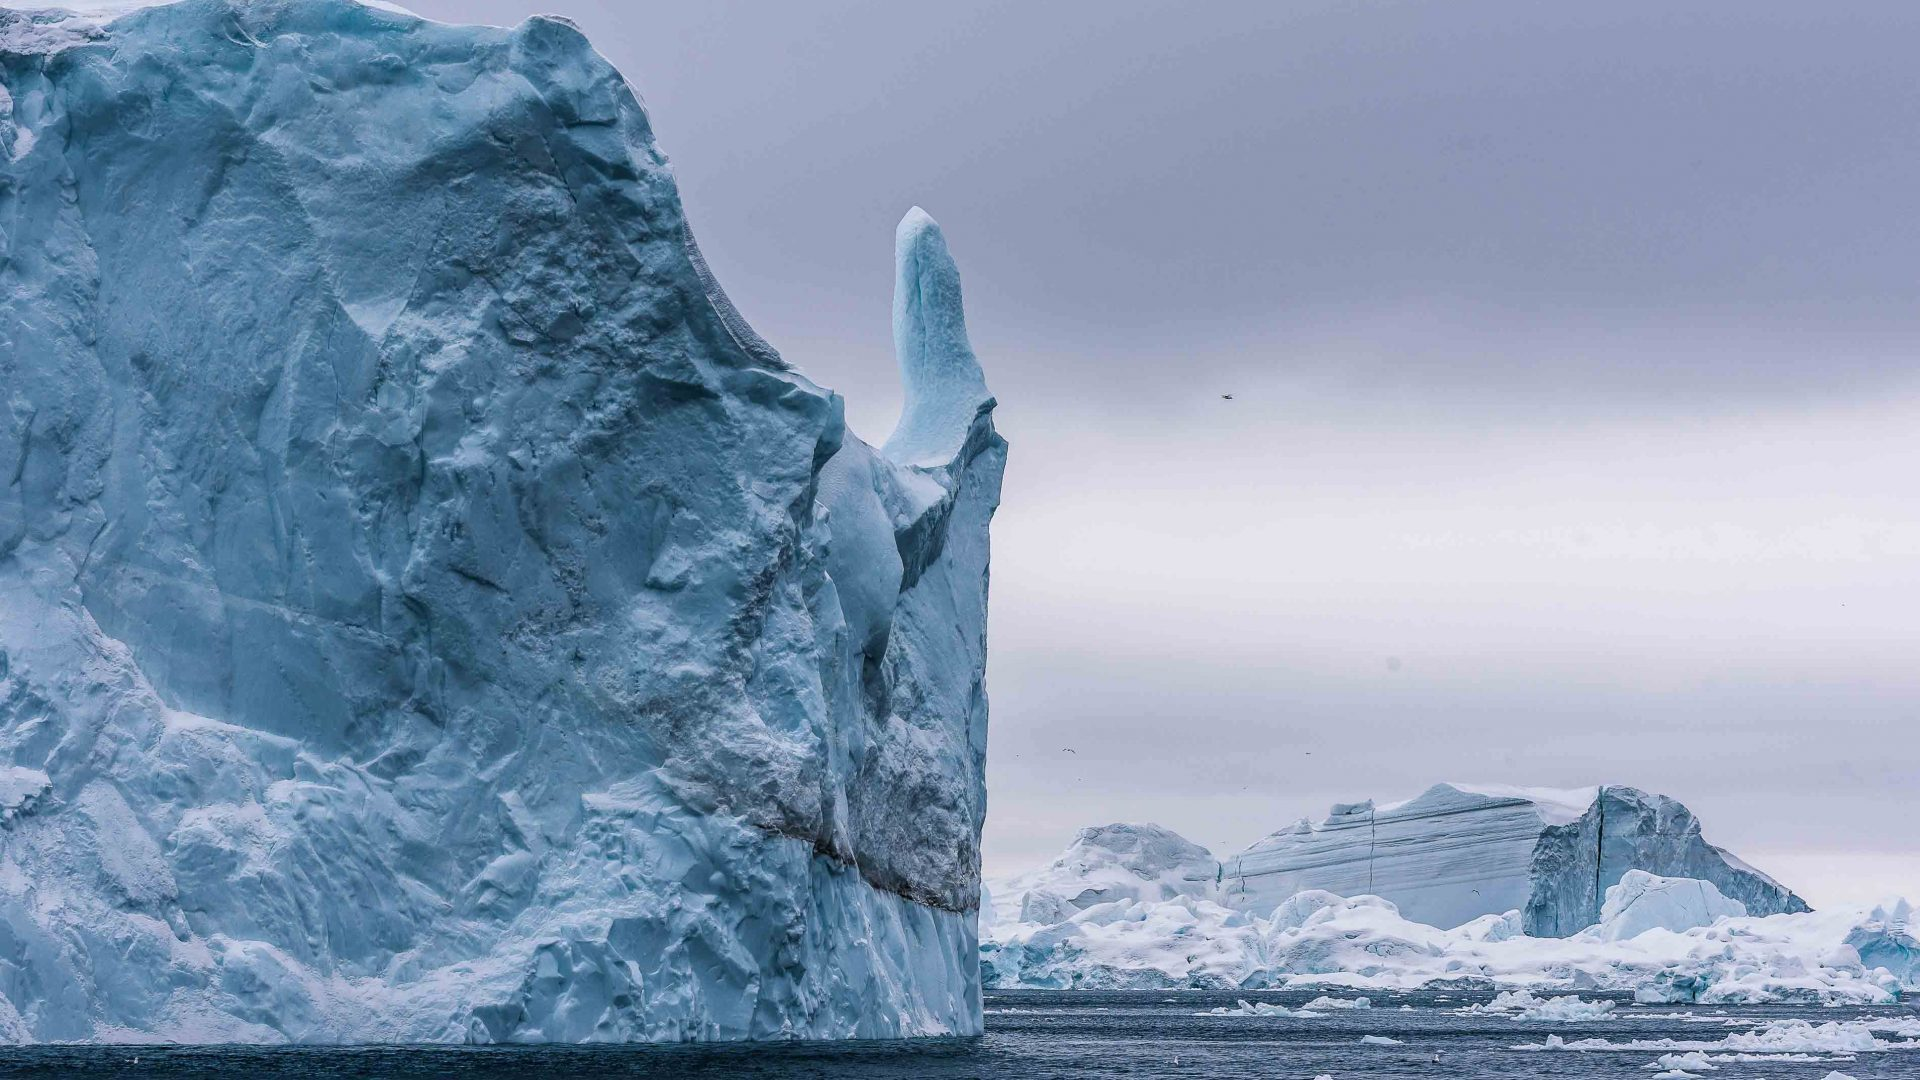 Many of the icebergs take on interesting shapes and profiles as they begin to melt.